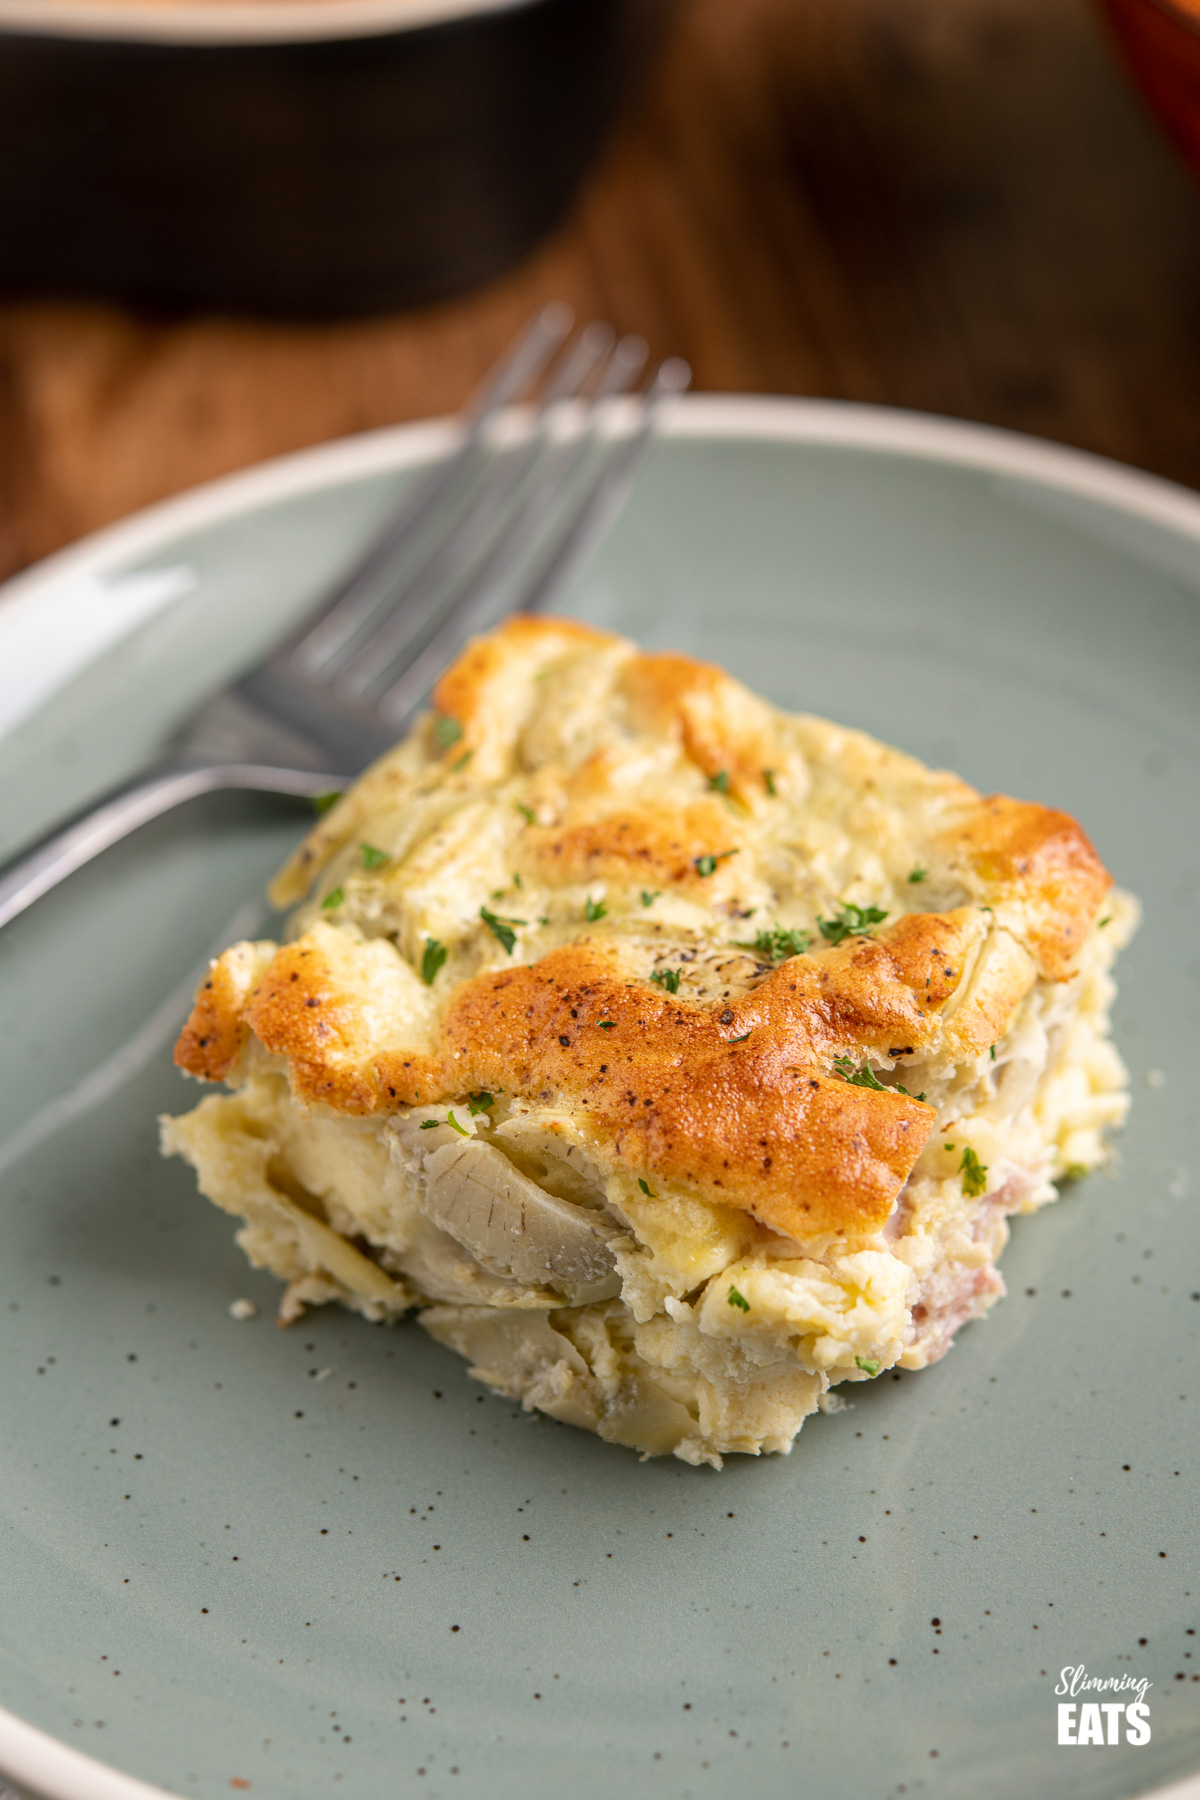 slice of Artichoke Bacon Parmesan Crustless Quiche on green blue plate with fork